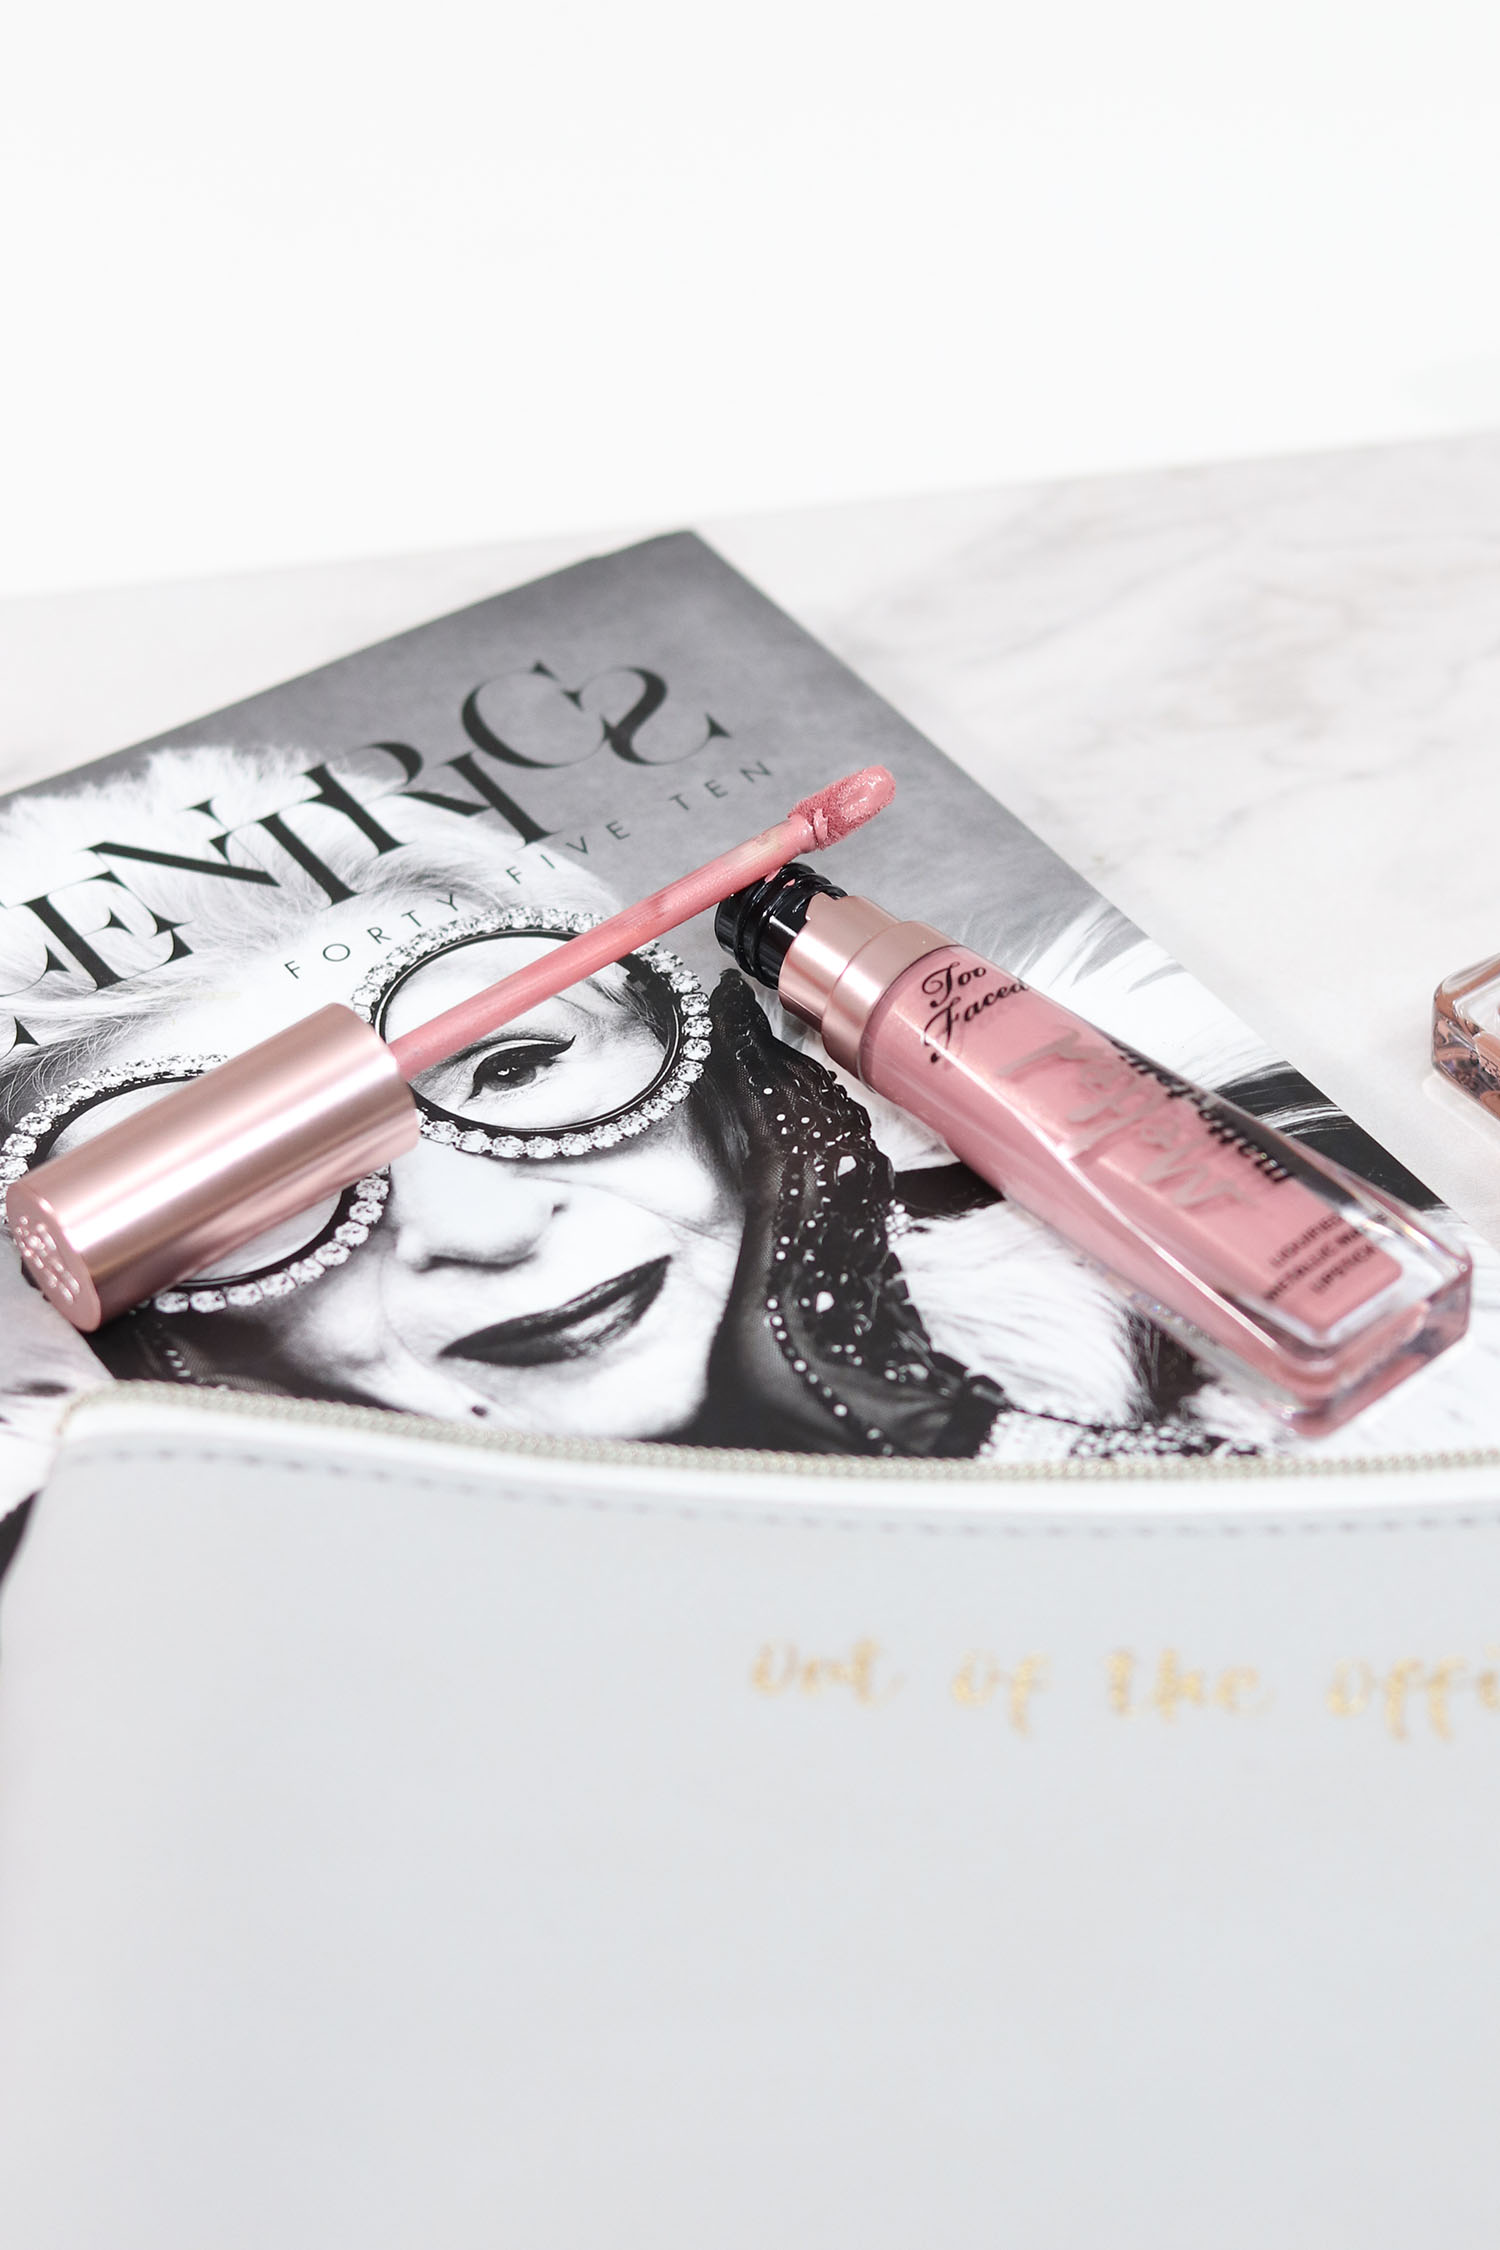 Too Faced Melted Matte-Tallic Liquified Lipstick Review | Close Up of Lipstick Applicator